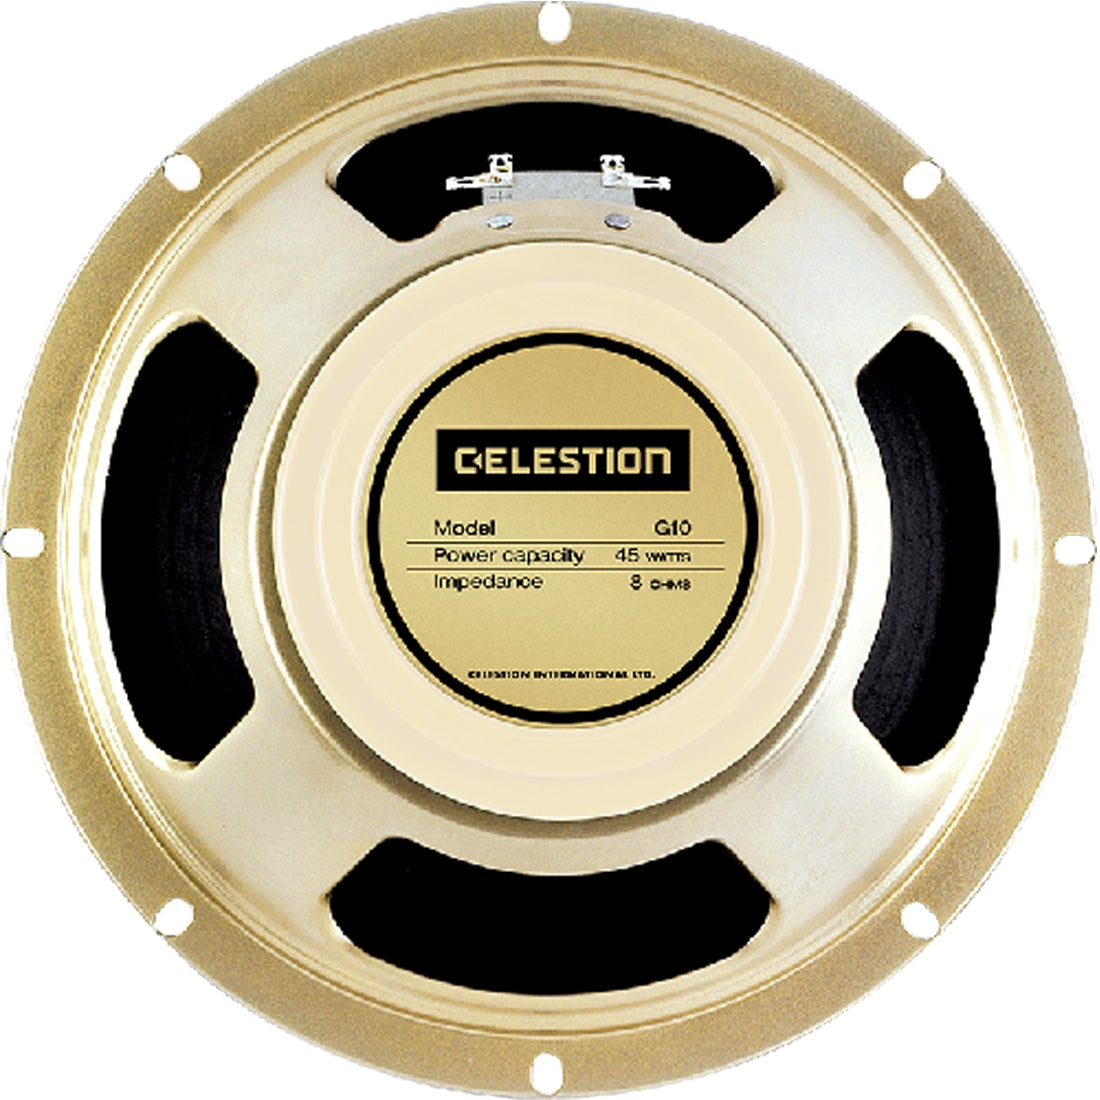 Celestion T6381 G10 CREAMBACK Guitar Speaker 10 Inch 45w 16ohm